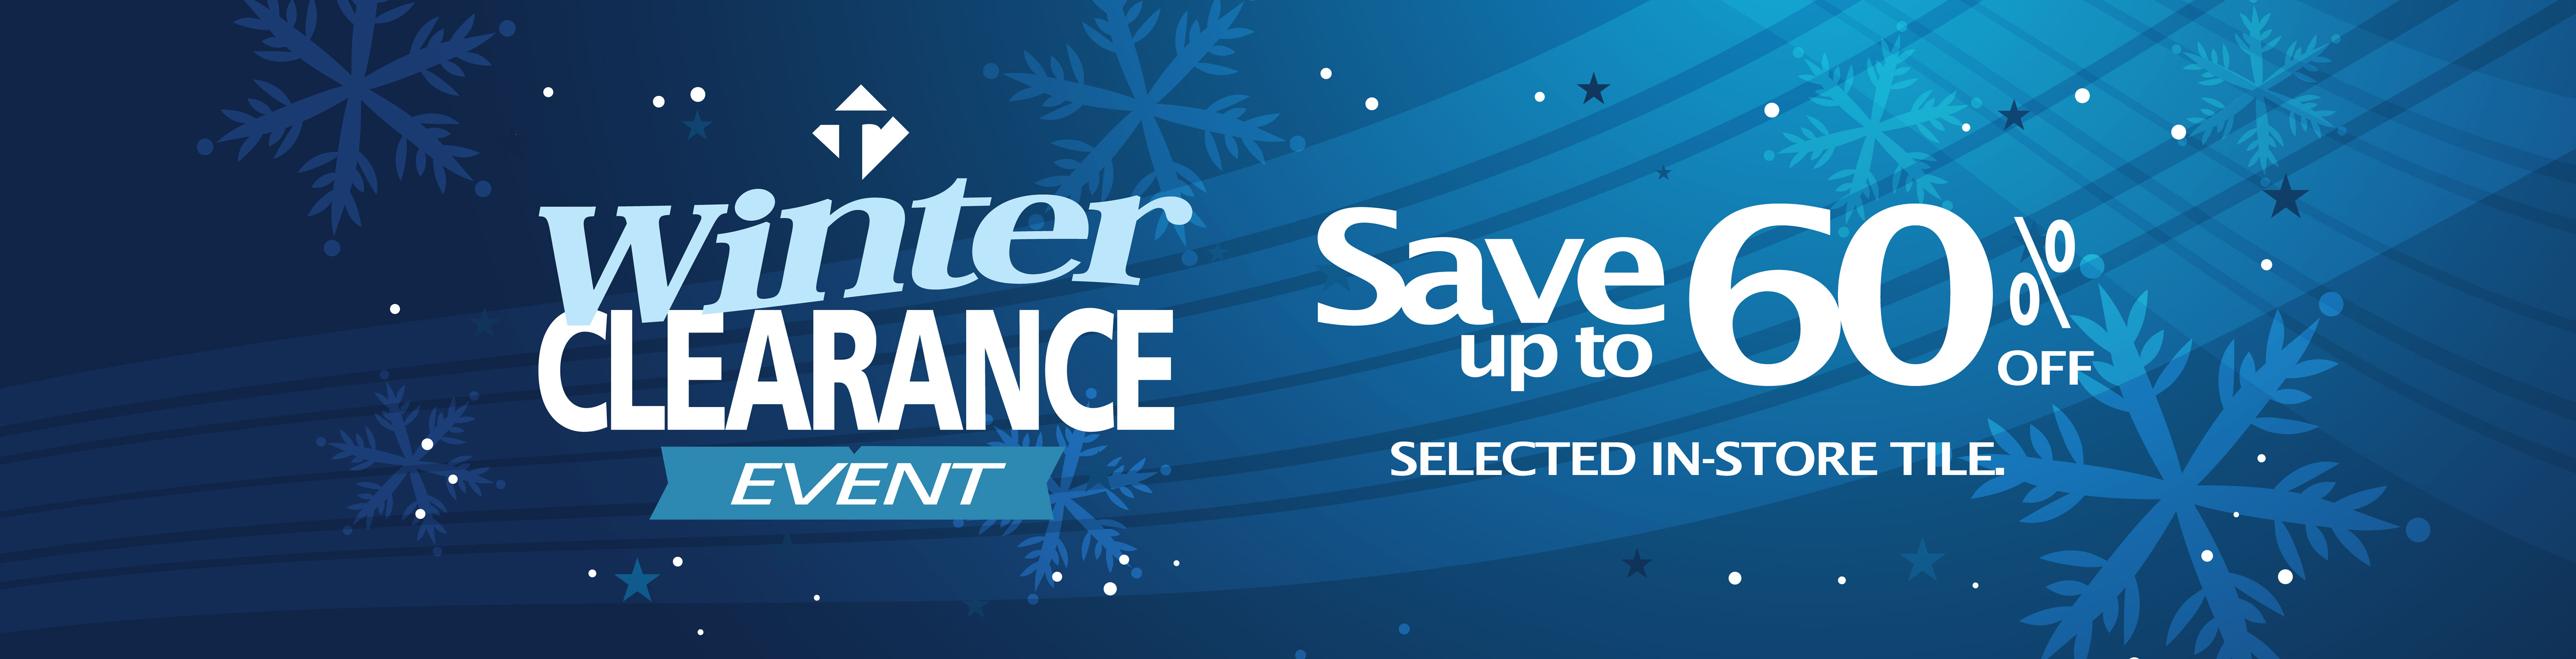 Save 60% on selected in-store tile